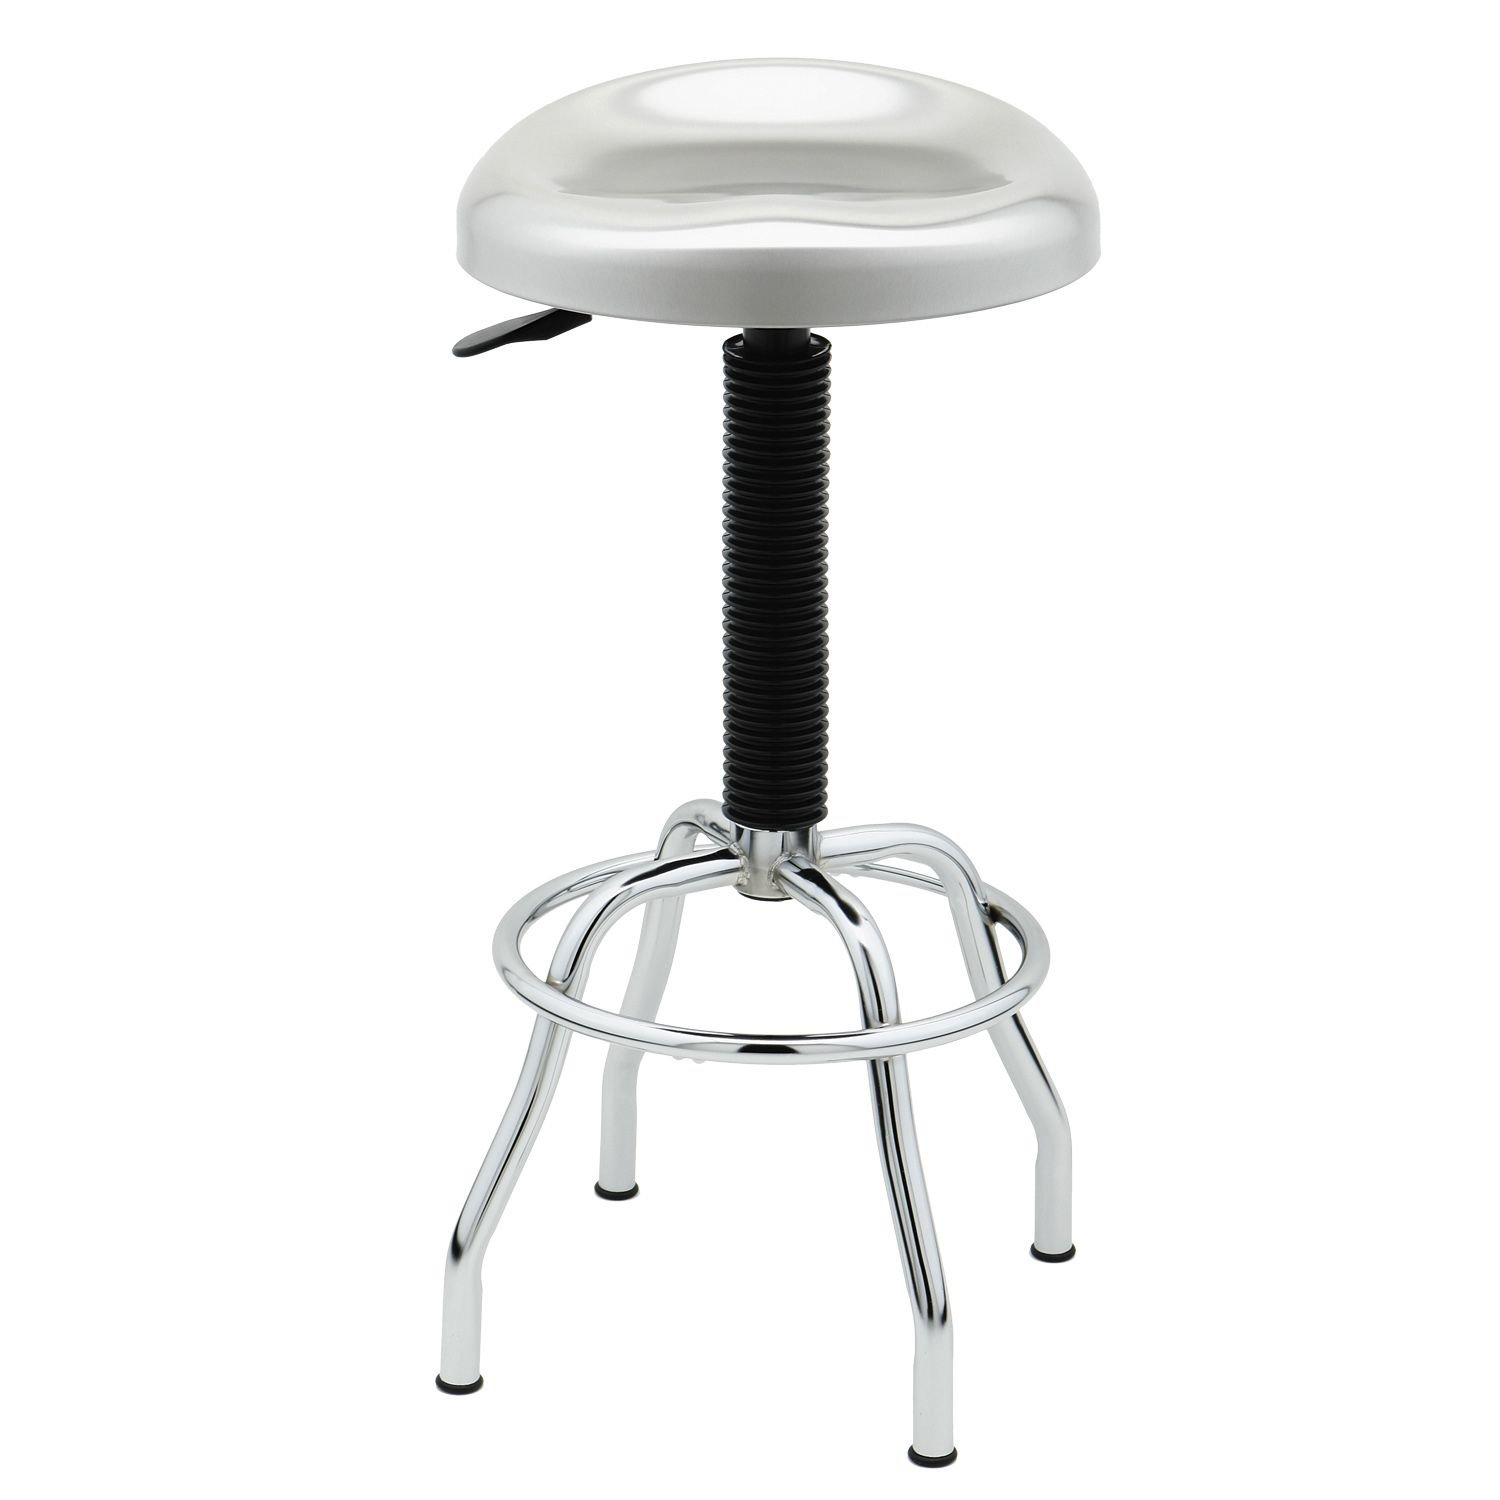 Amazon.com Seville Classics Heavy Duty Commercial Stainless Steel Work Stool - 18292 Kitchen u0026 Dining  sc 1 st  Amazon.com & Amazon.com: Seville Classics Heavy Duty Commercial Stainless Steel ... islam-shia.org